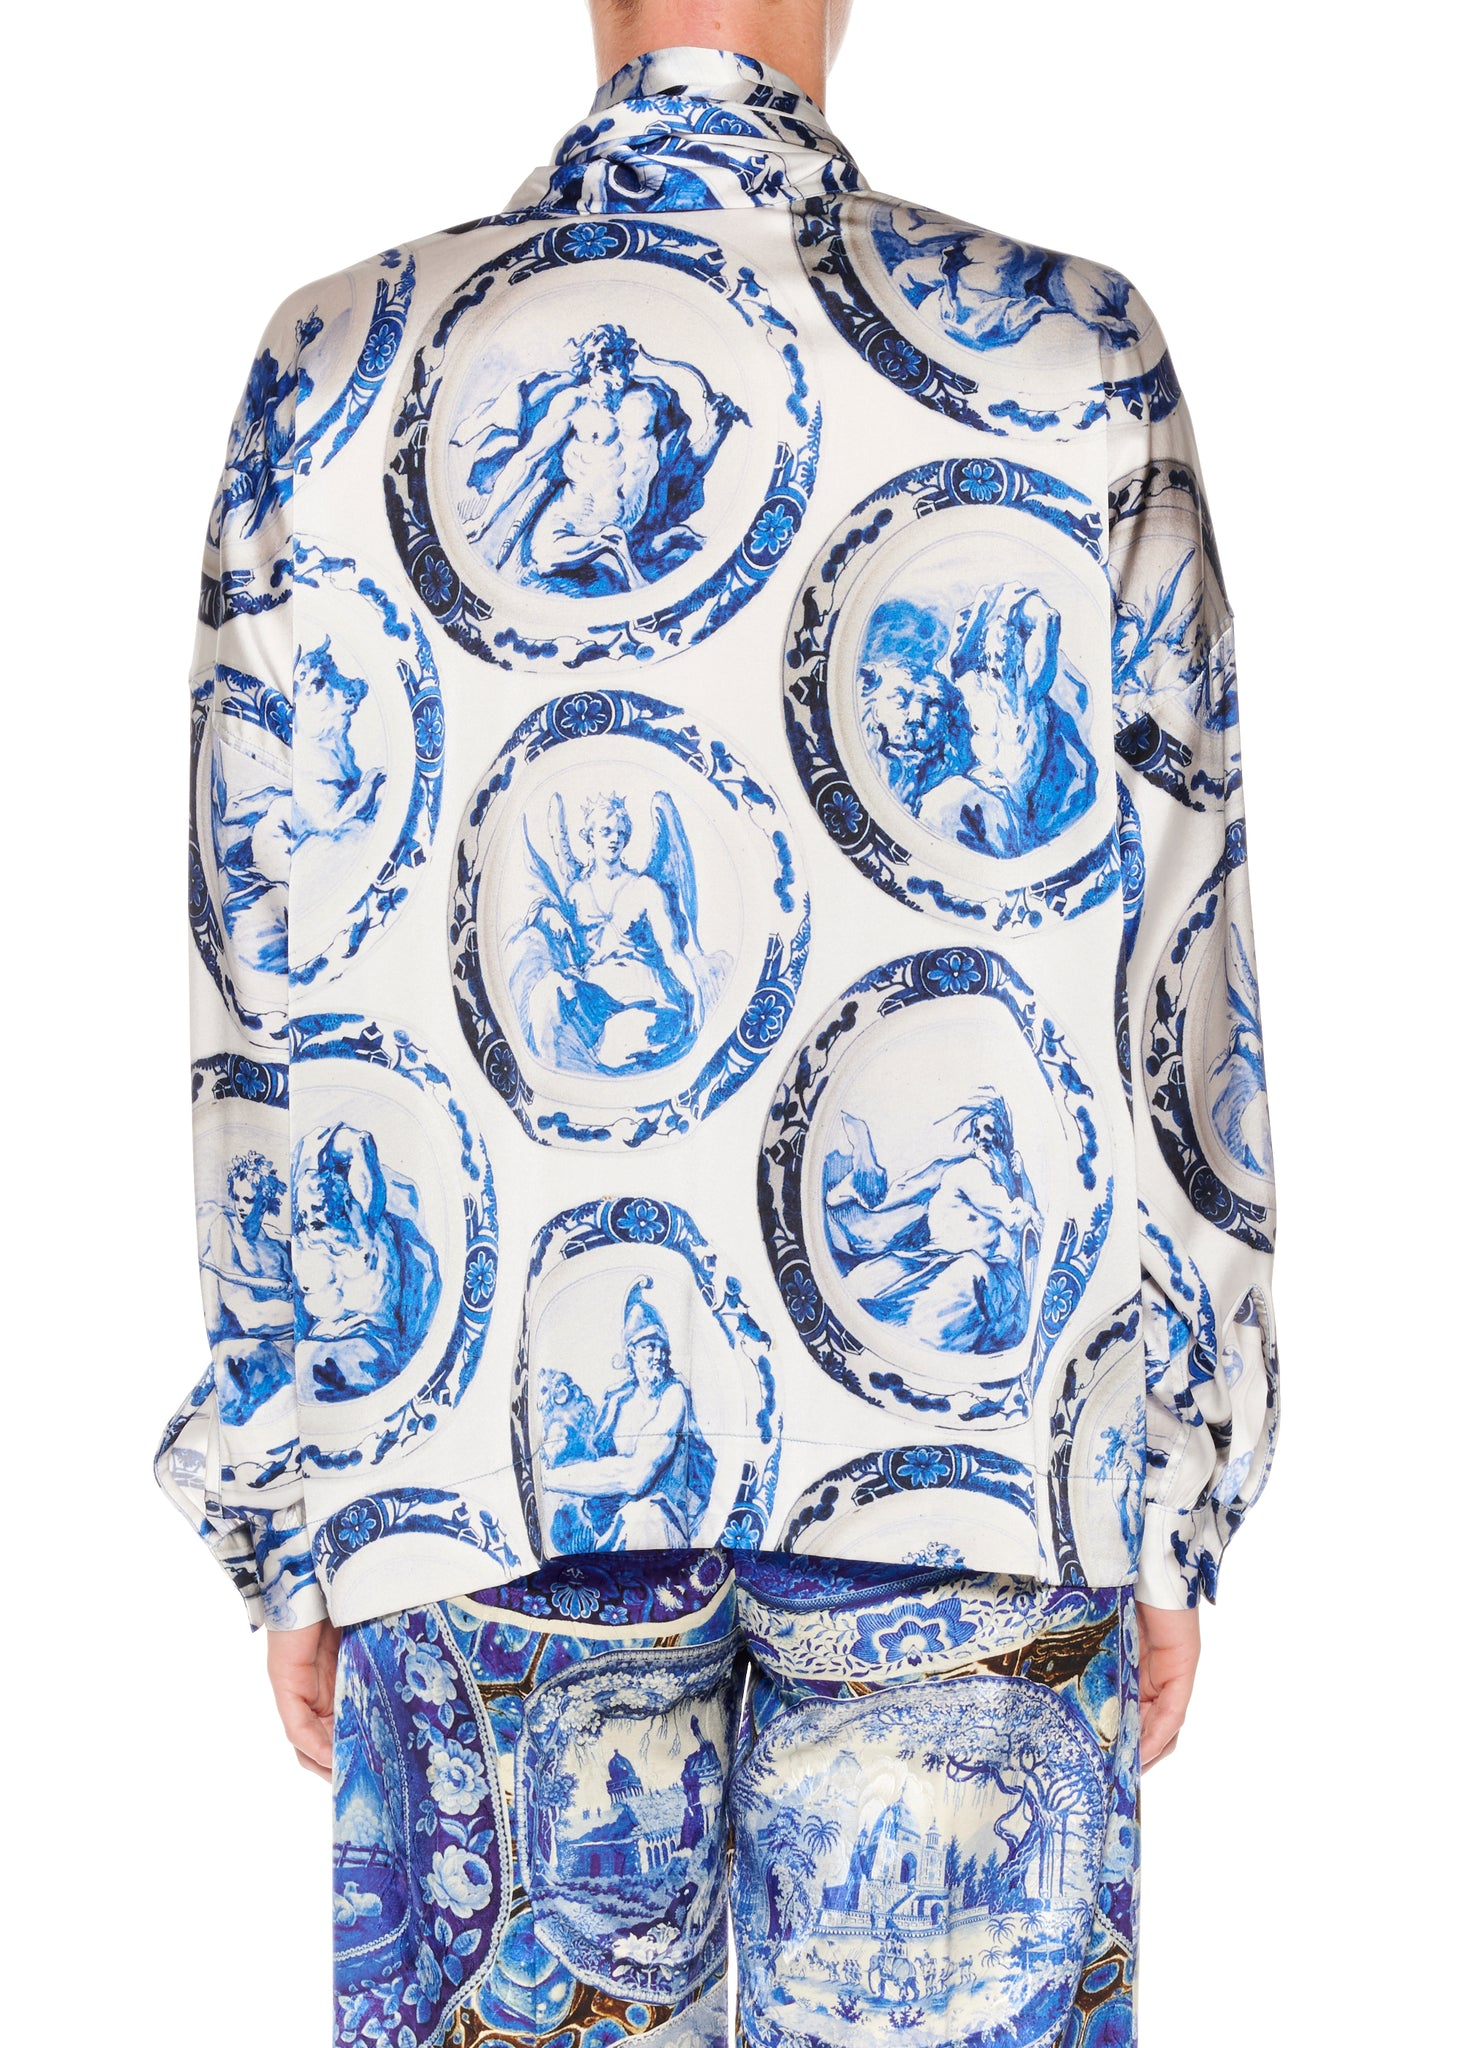 ''Zodiac'' Tie Blouse - Women's Tops - Libertine